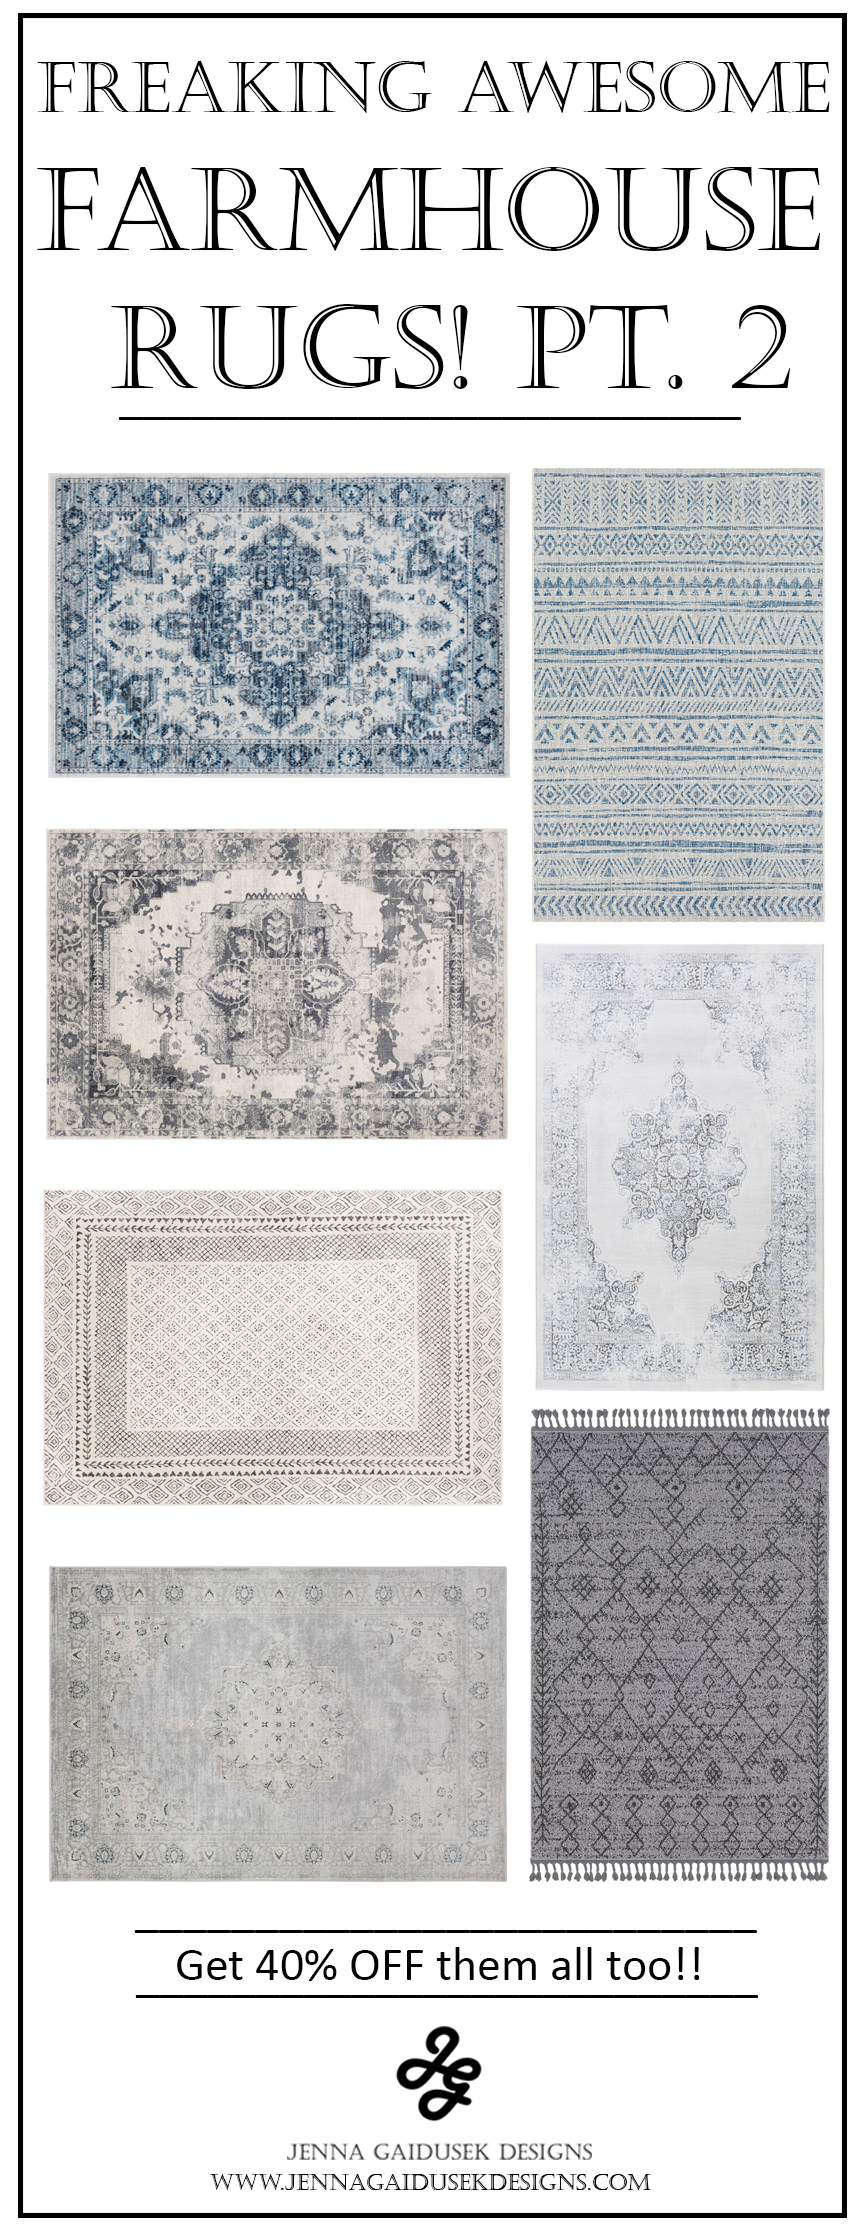 Freaking awesome farmhouse rugs! These are my favorite neutral, family friendly refined farmhouse rugs! I'm in love with the affordable rug prices from Boutique rugs. My favorite medallion area rugs, vintage rugs, blue rugs, patterned rugs. Check out my designer picks and see what works best for your farmhouse living room, dining room rugs, bedroom rugs, runner rugs. The perfect neutral rug colors, blue rugs, gray rugs and pattern rugs. #surya #onlineinteriordesign #edesign Farmhouse interior designer